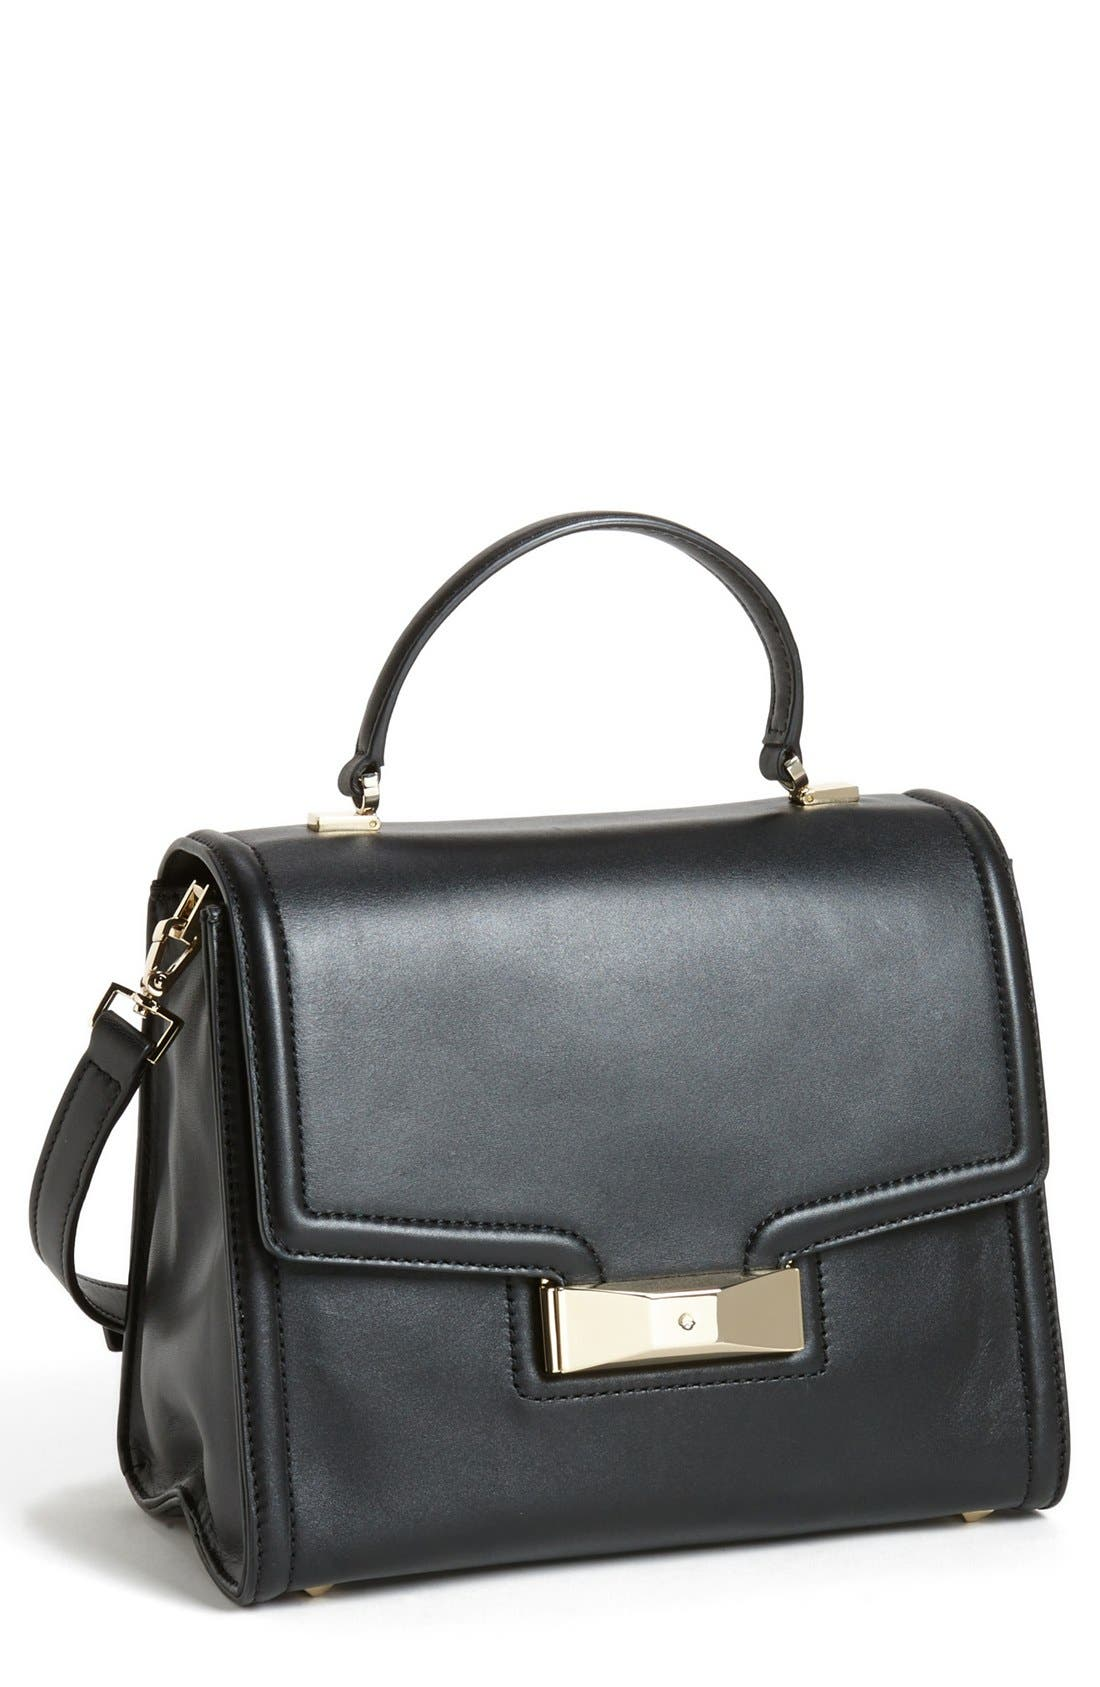 Alternate Image 1 Selected - kate spade new york 'carroll park - penelope' leather satchel